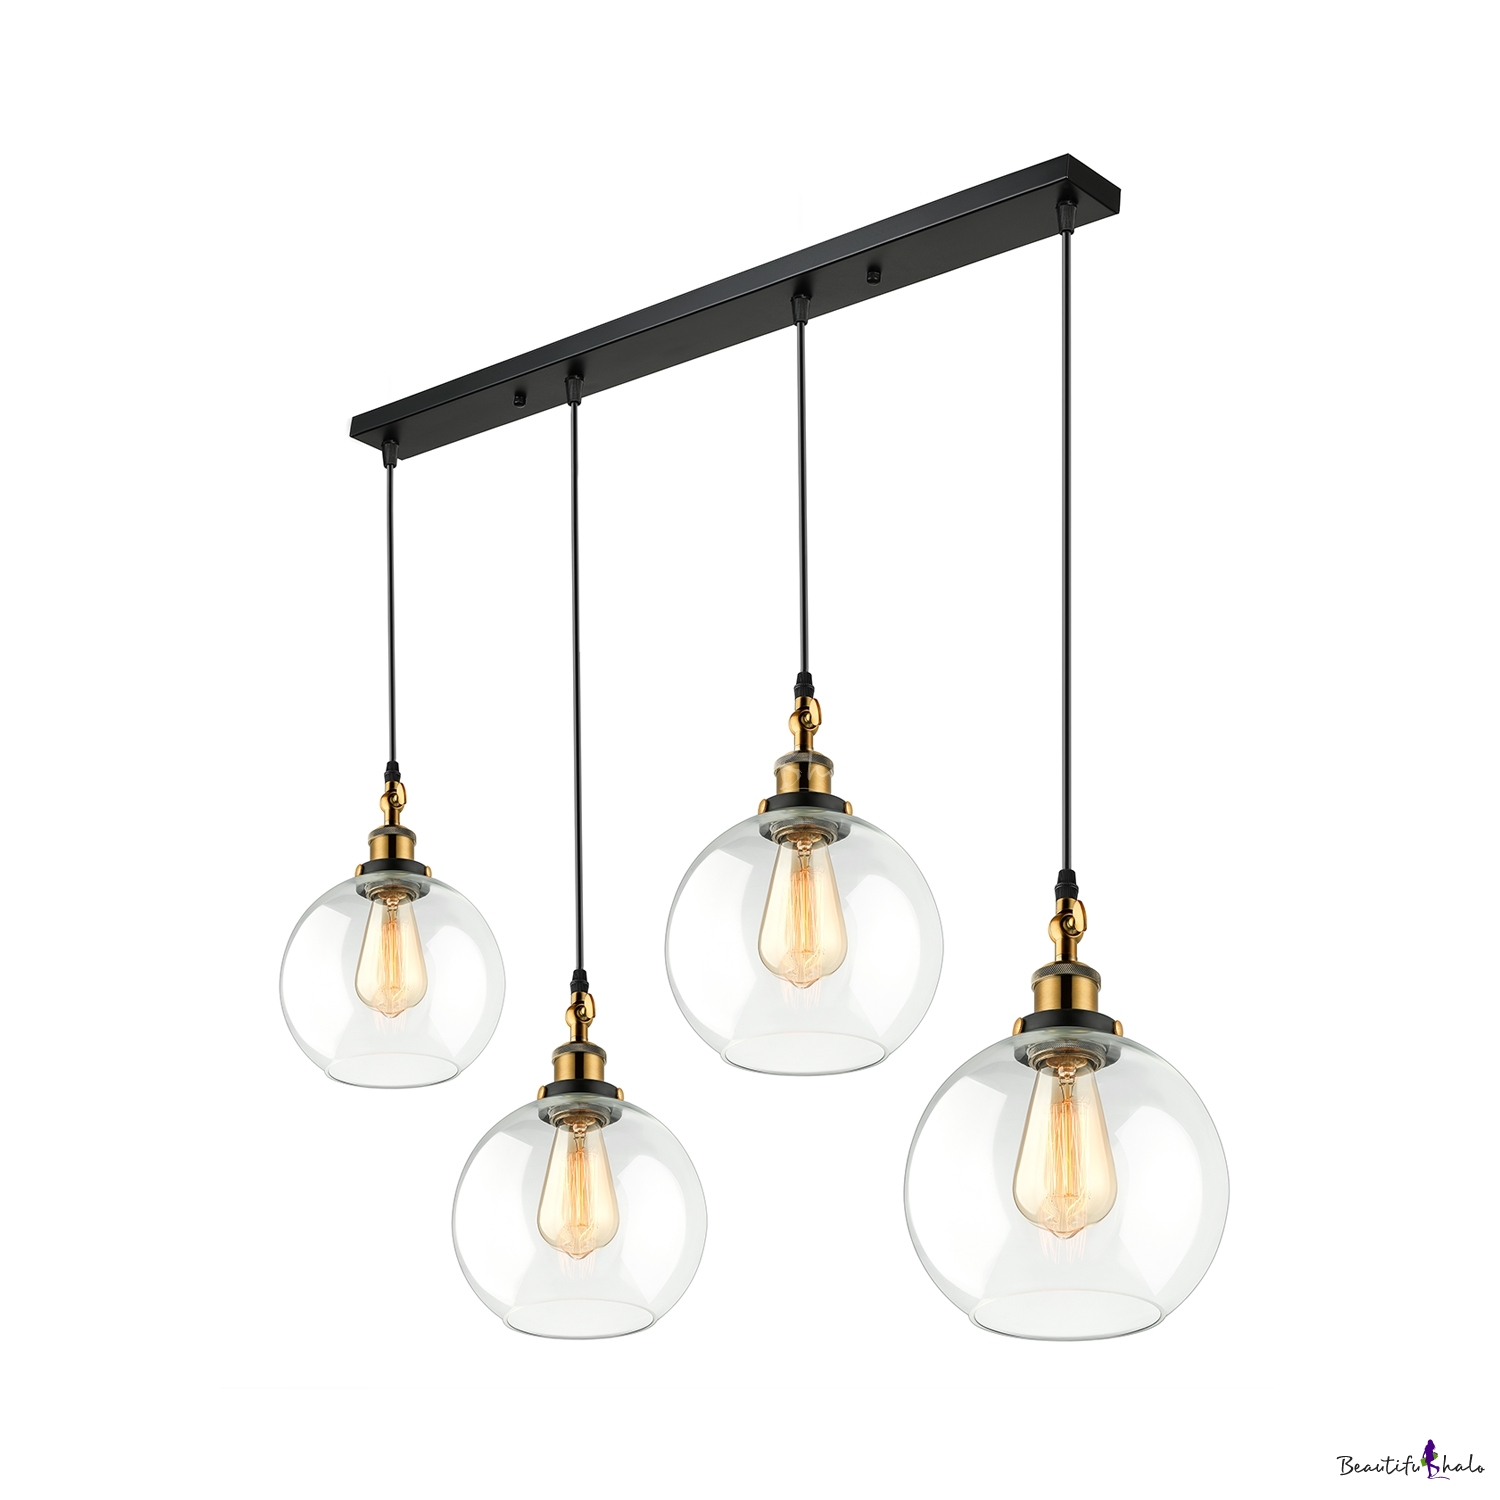 Retro Style Multi Light Pendant In Gl Globe Shade Linear Lighting Black